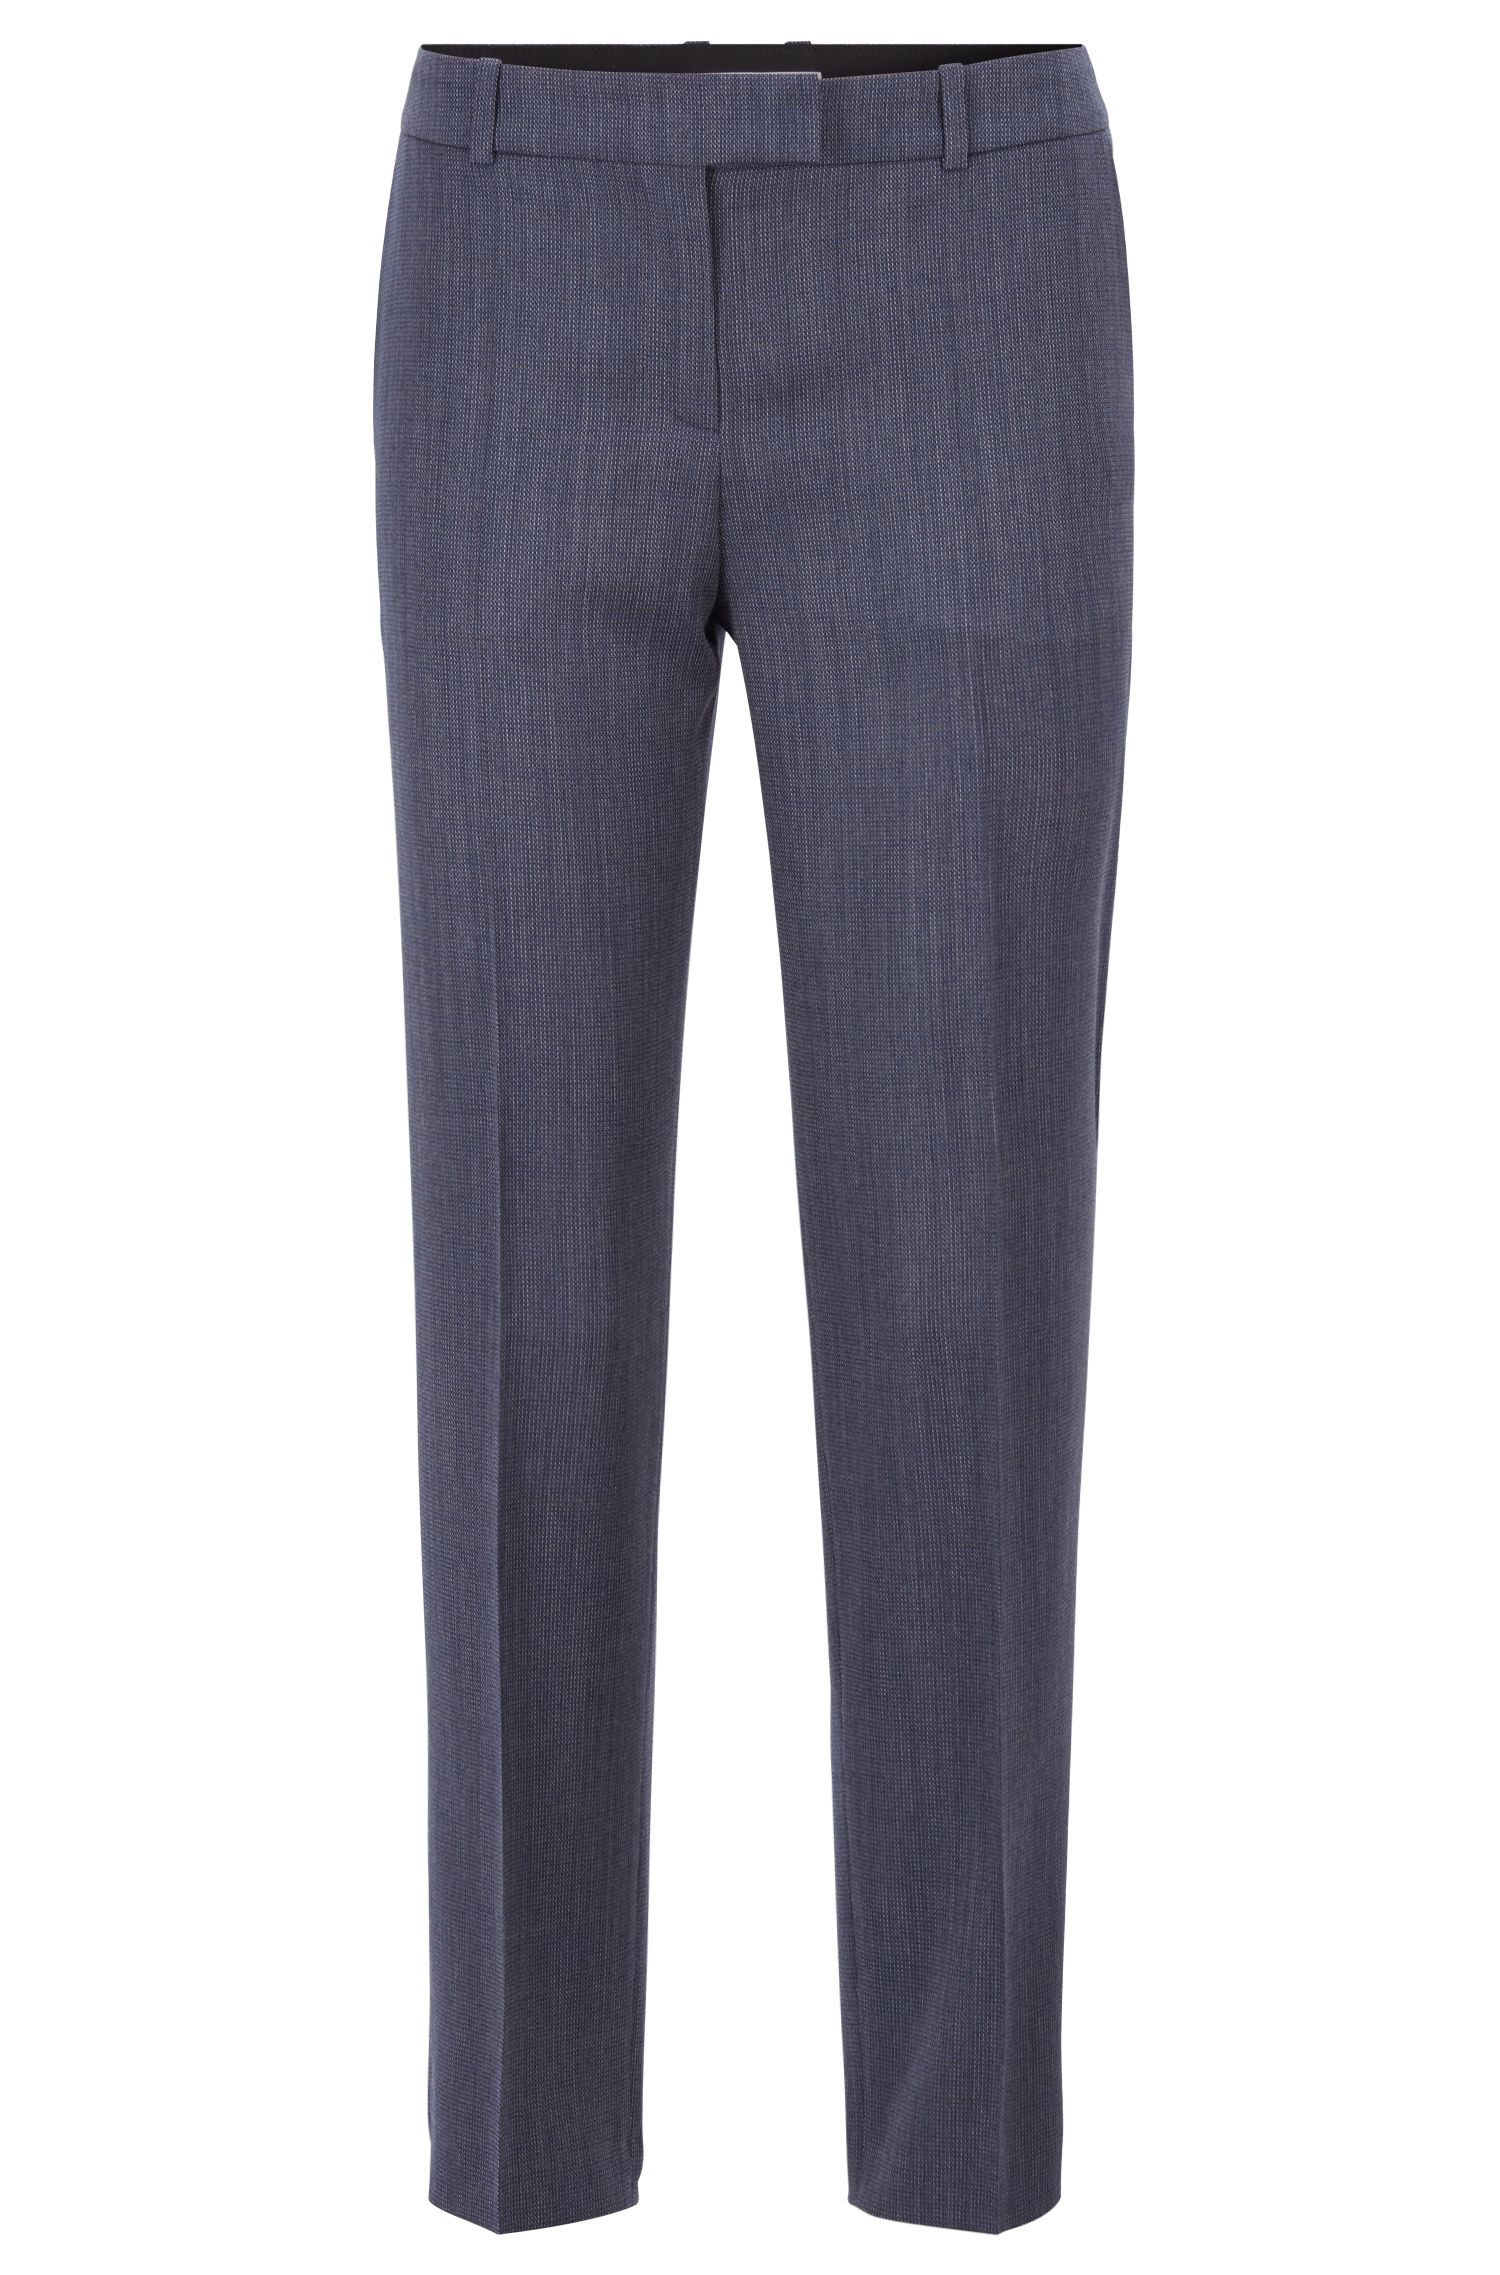 Relaxed-fit pants in micro-patterned Italian virgin wool, Patterned